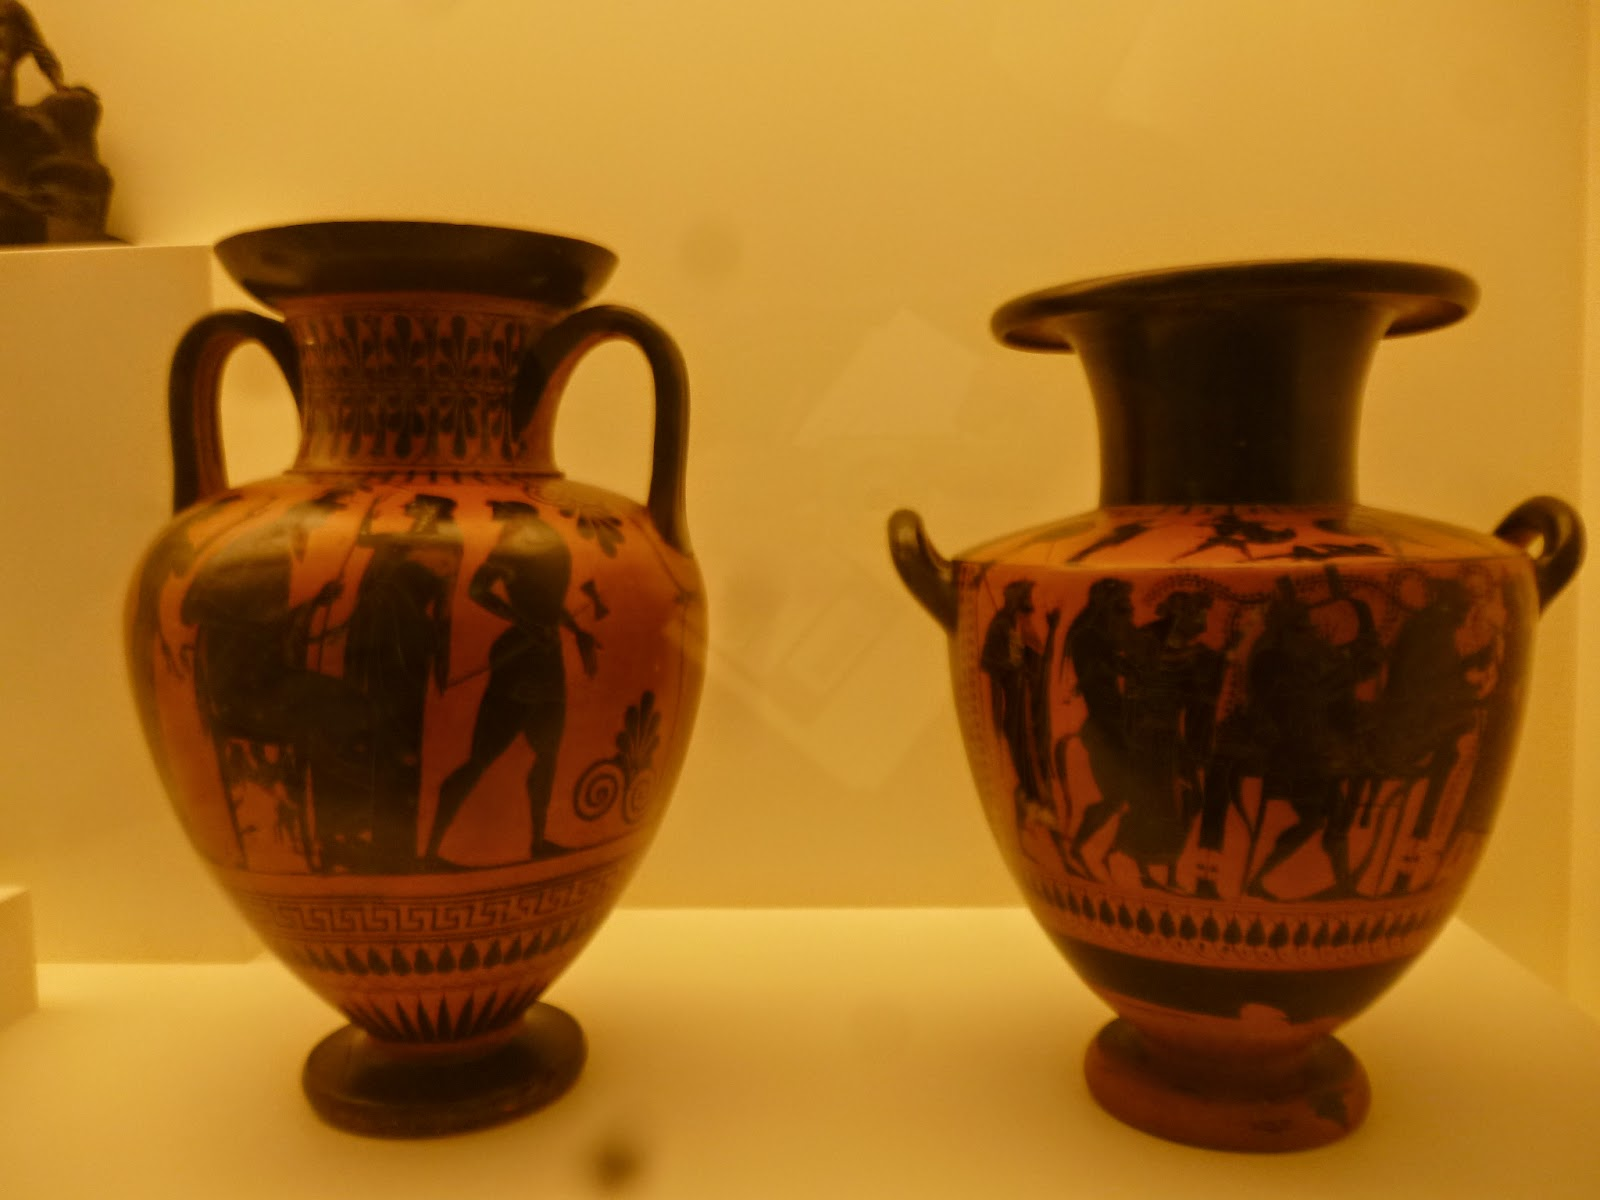 Greek Vases - Bendigo Art Gallery